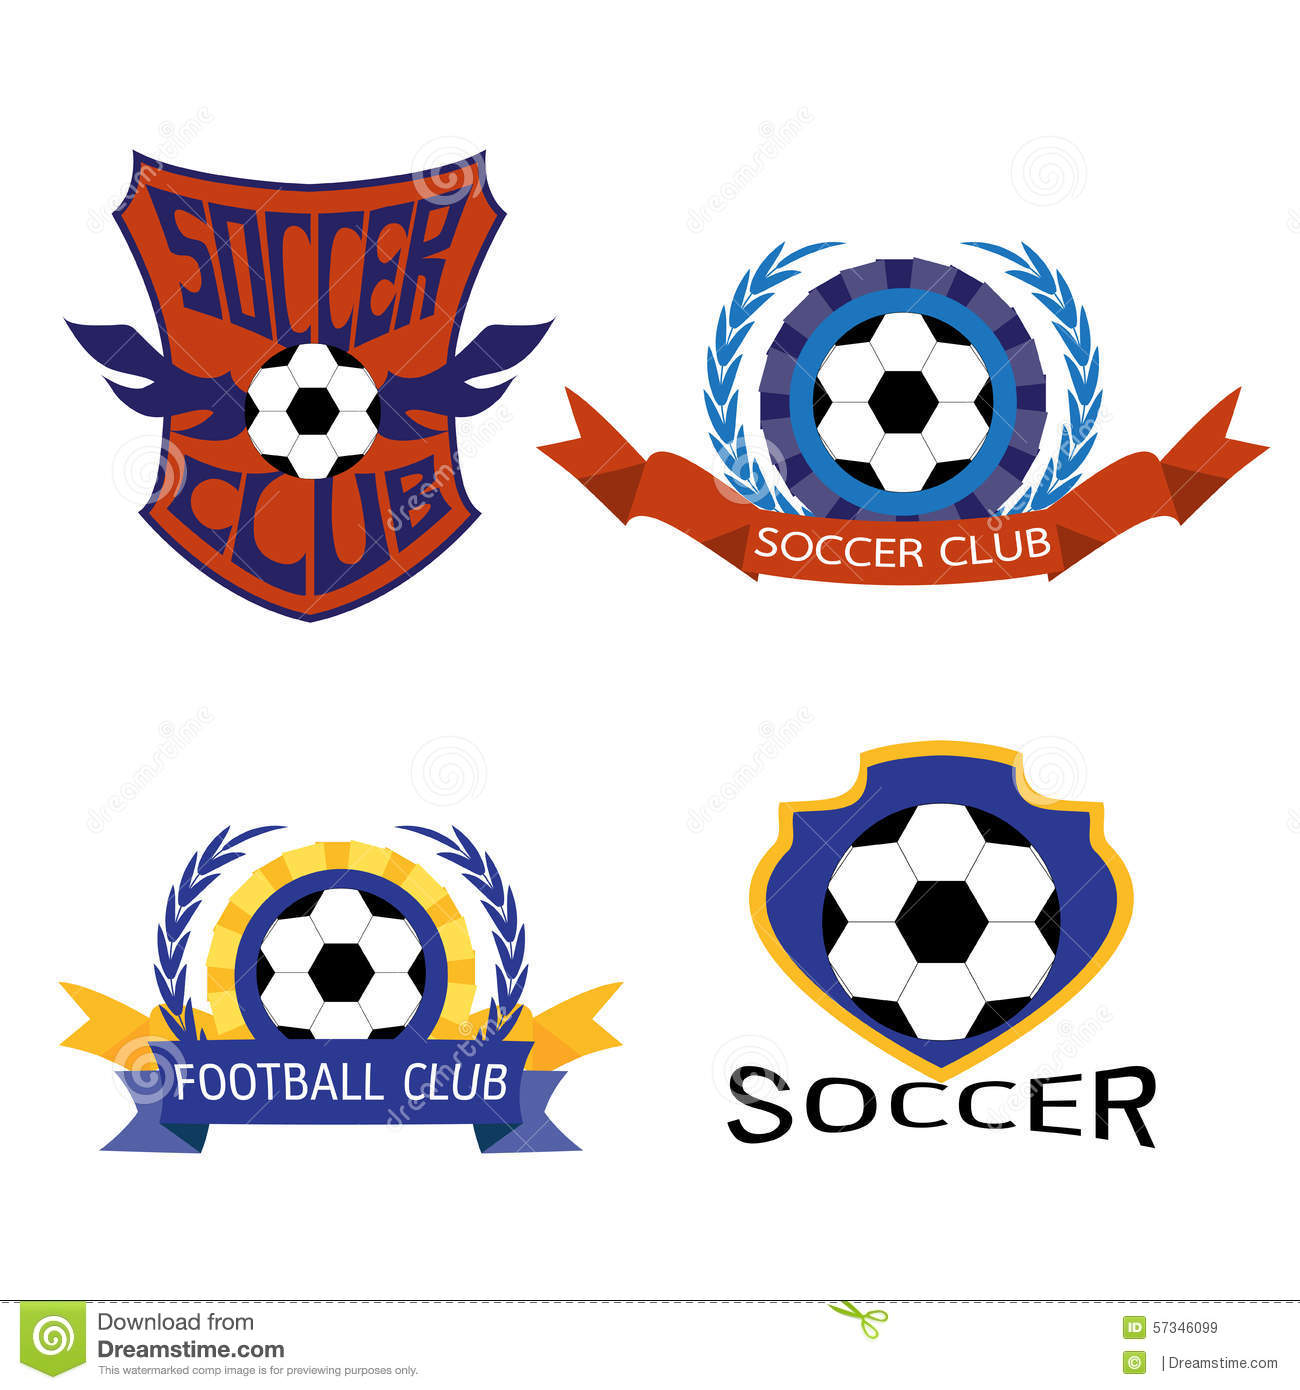 soccer logo designs for shirts wwwpixsharkcom images